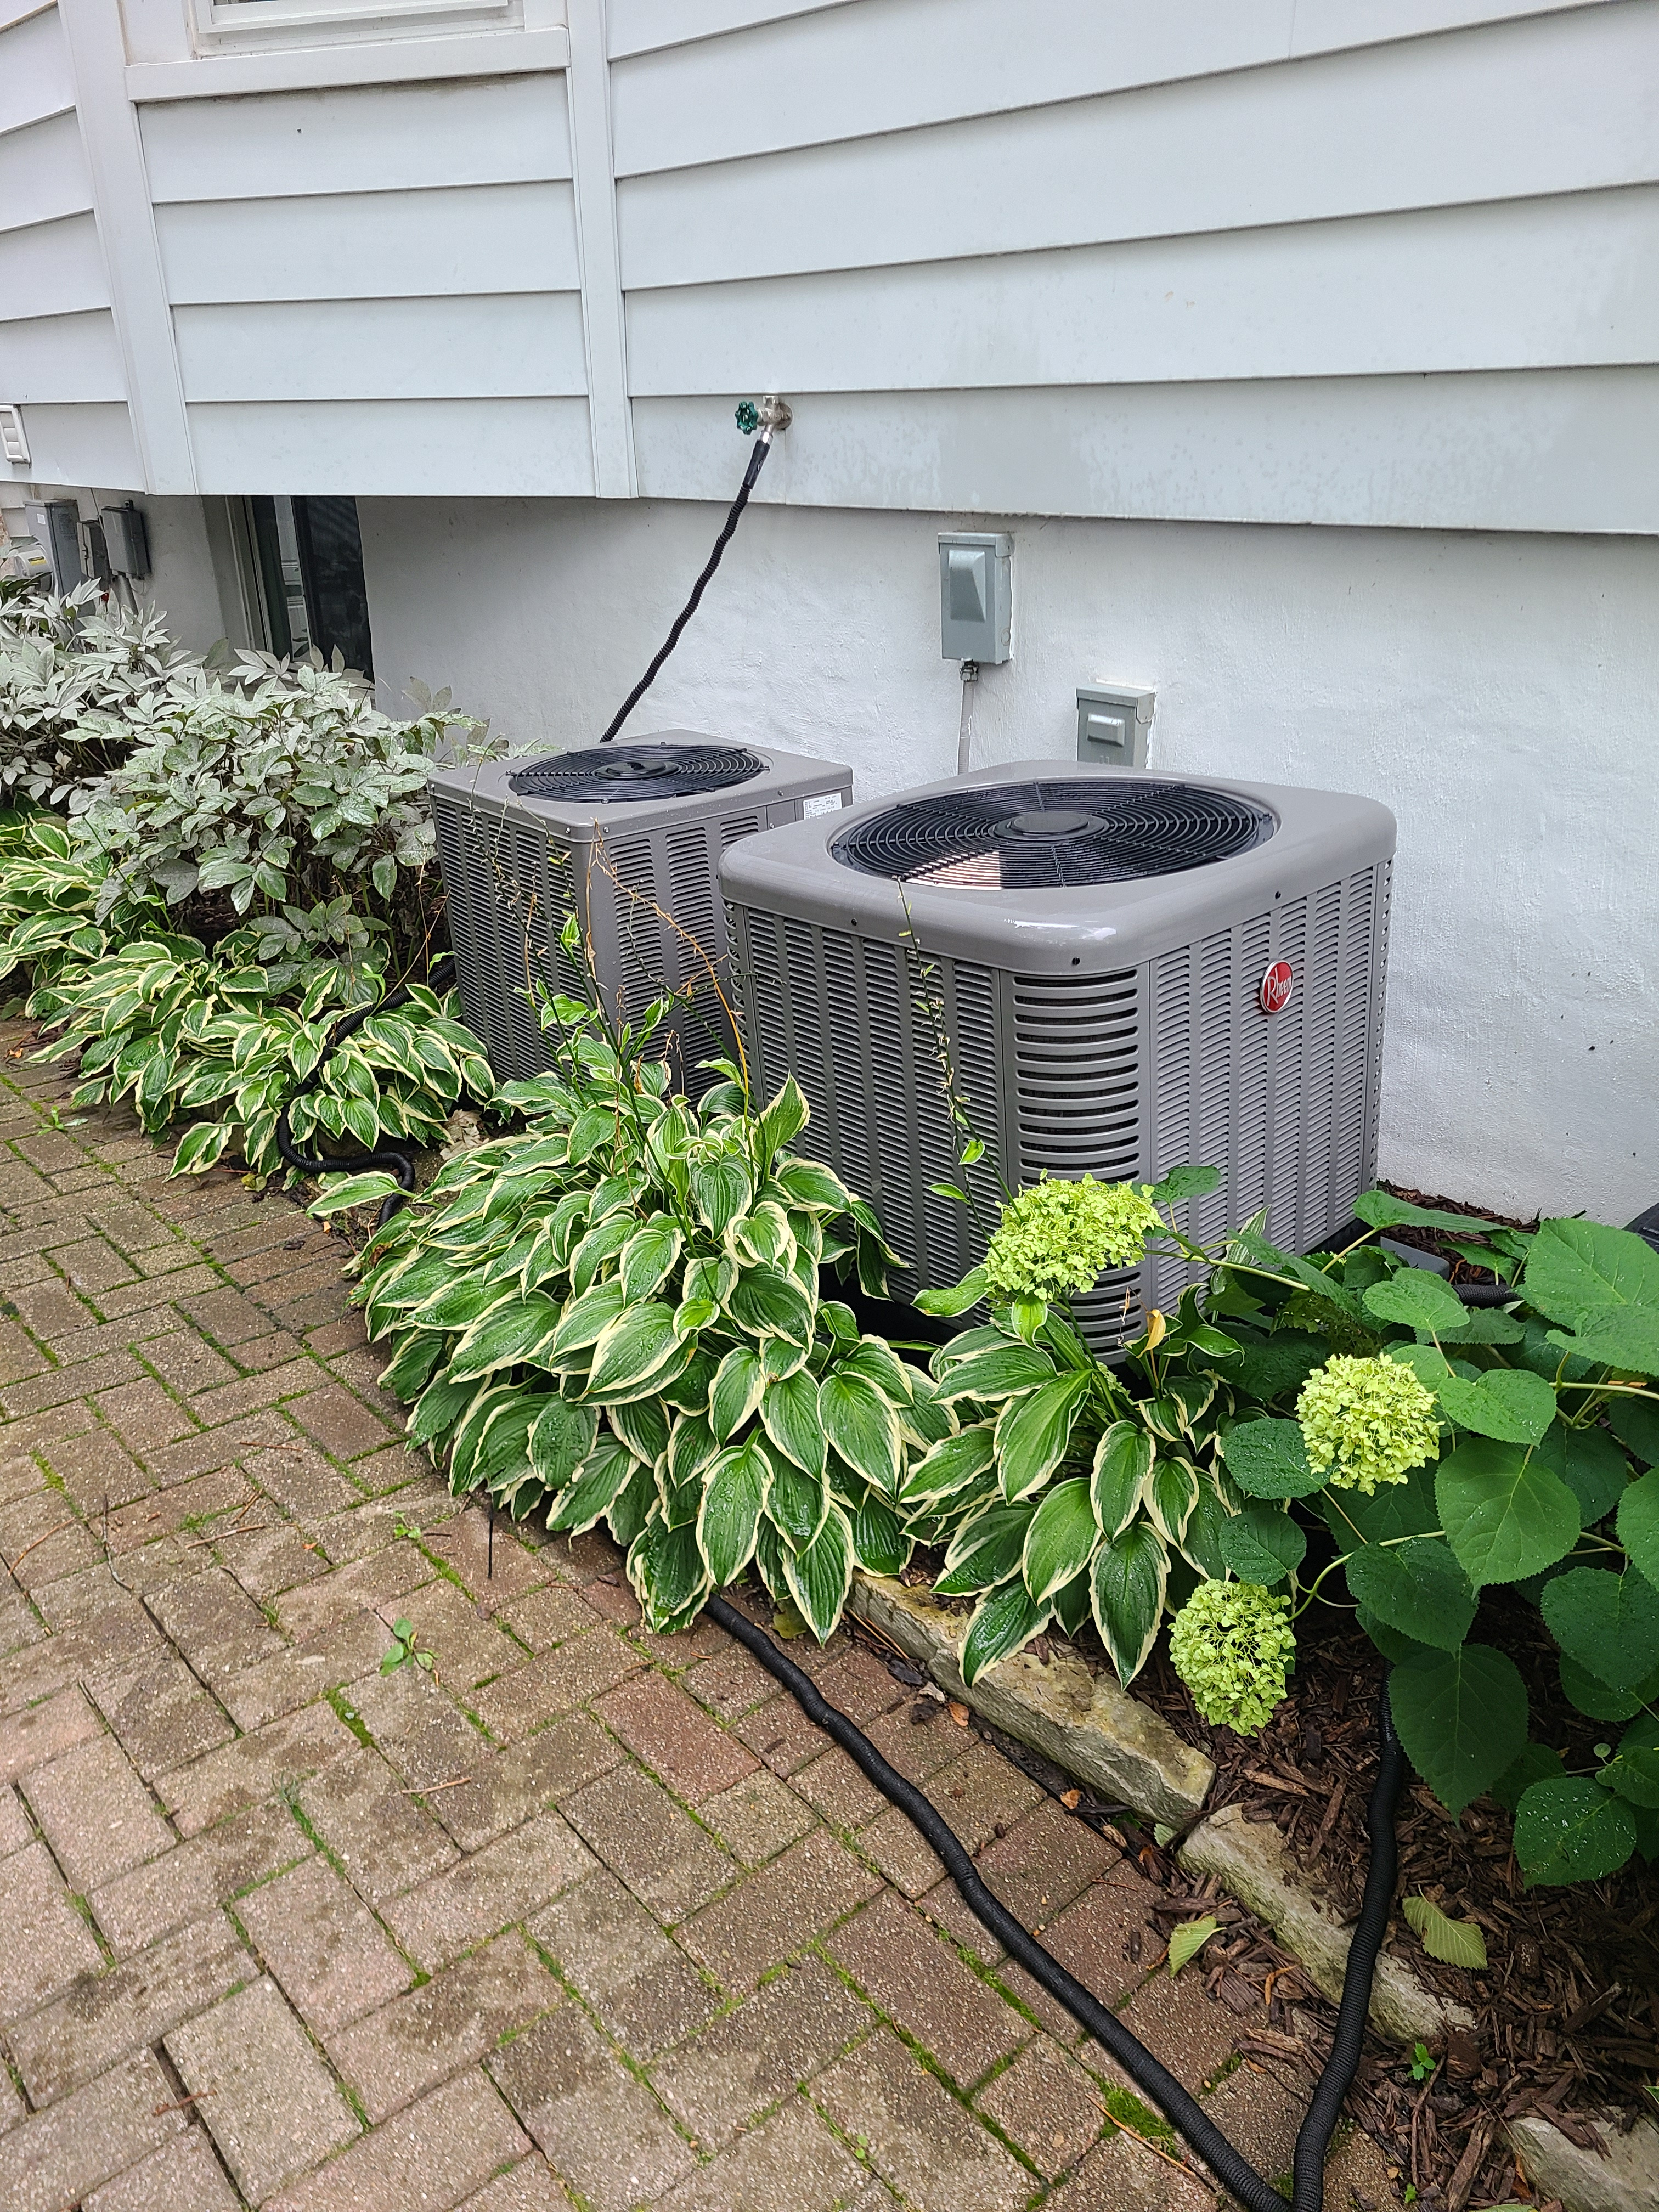 2 RHEEM r410a systems cleaned and tested